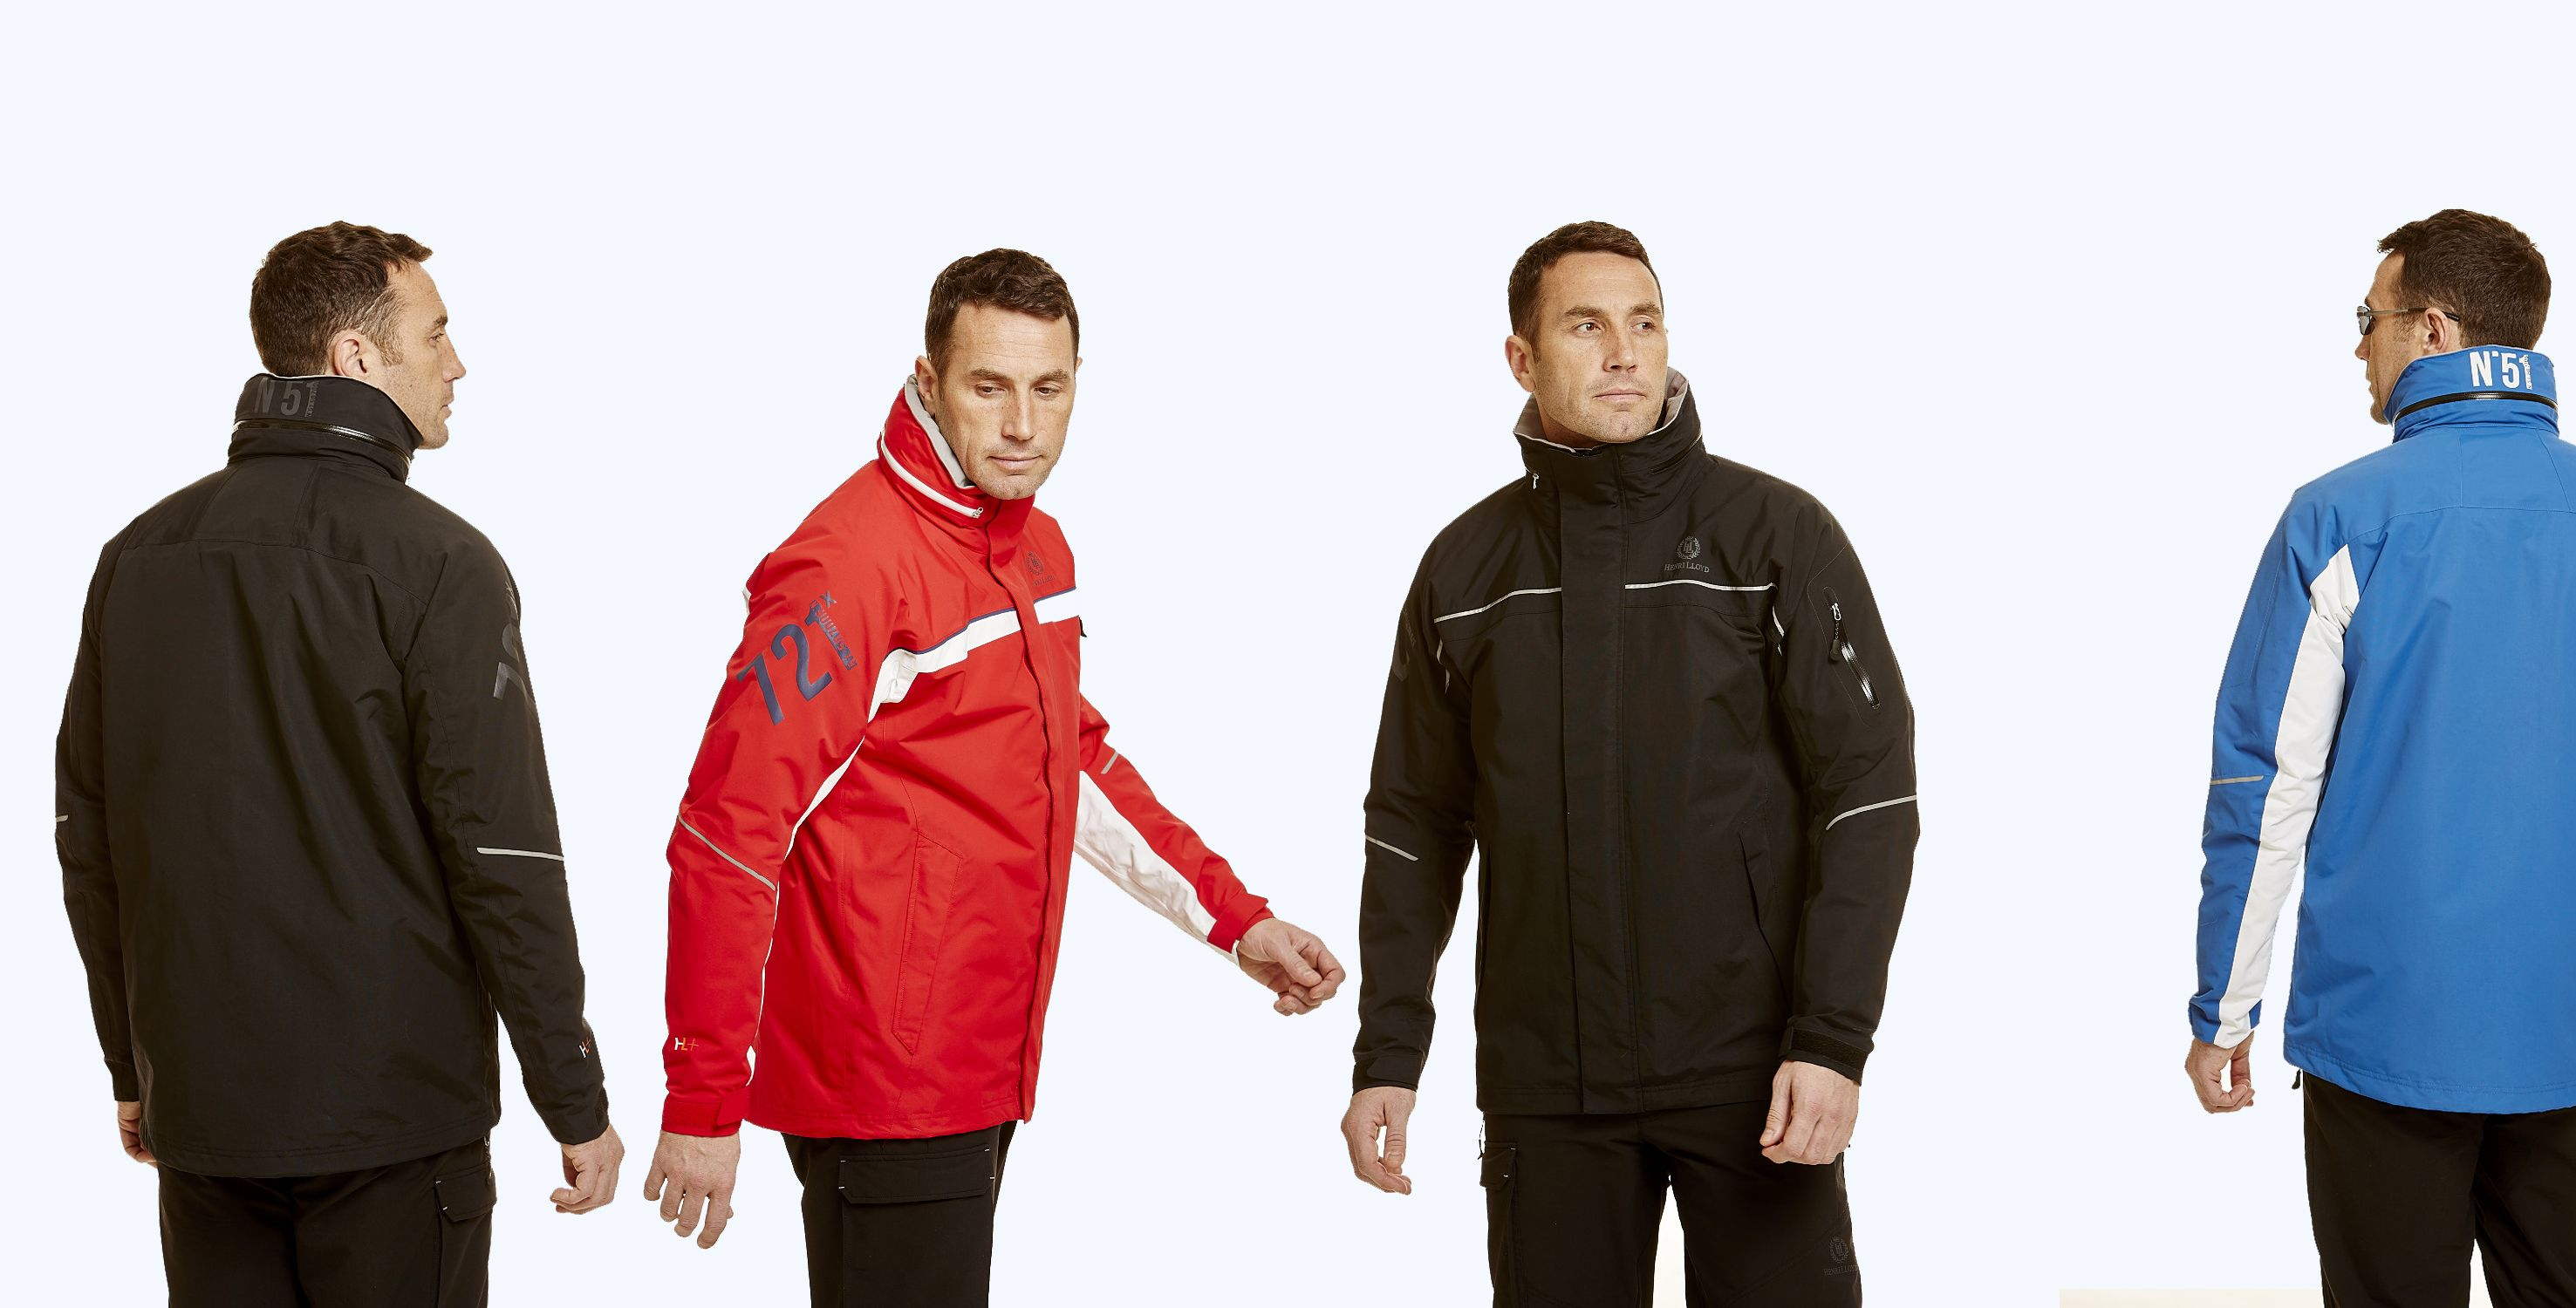 437df8db22655 Our Sail Jacket is great for Inshore Coastal sailing for both Men and  Women. Henri Lloyd Sailing 2016